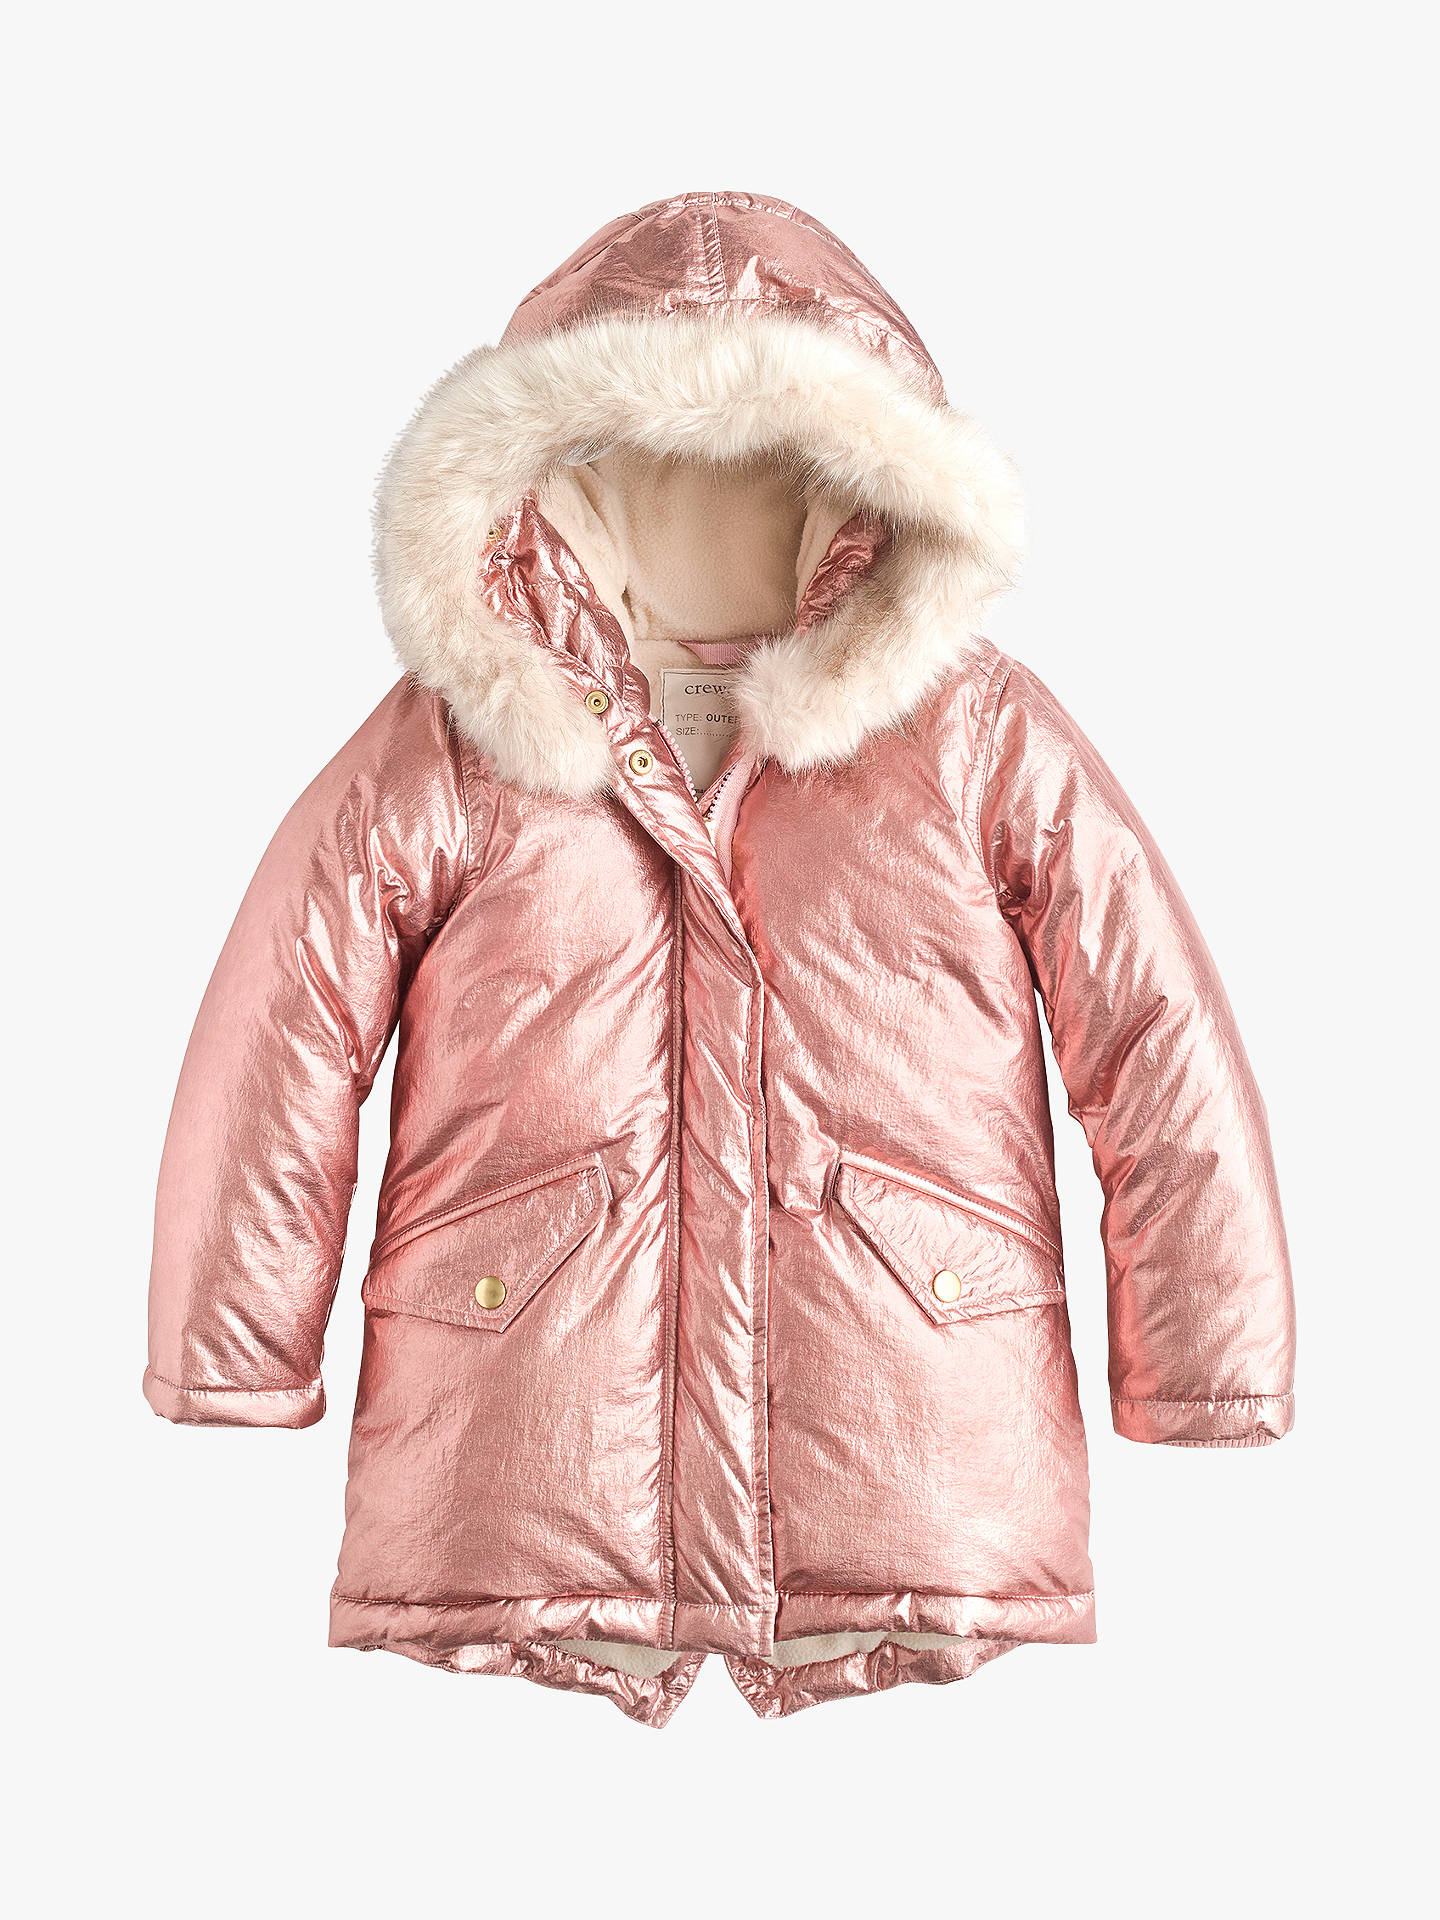 bdef21e47 crewcuts by J.Crew Girls' Metallic Puffer Jacket, Rose Gold at John ...